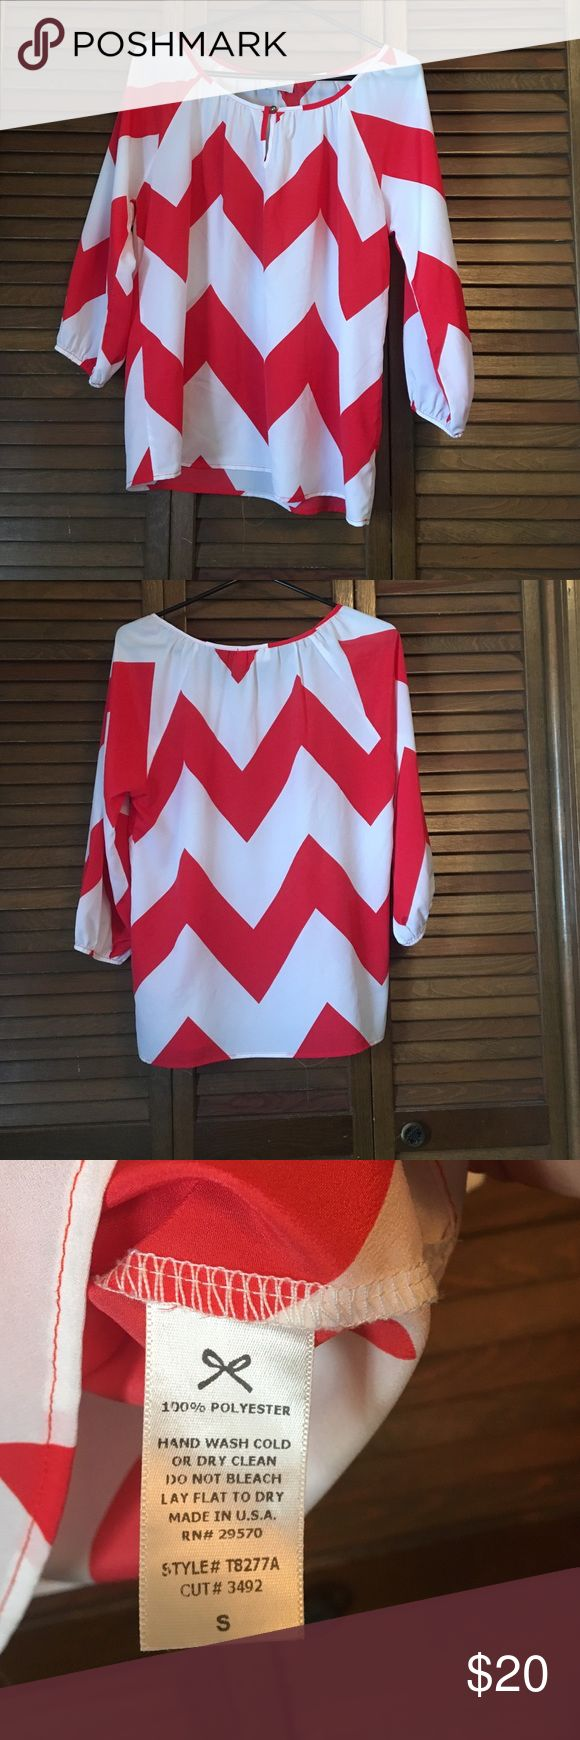 Chevron shirt Orange and white chevron shirt. Size small. Has a very light and comfortable fit. Bought at Altar'd State. Super cute shirt and in perfect condition. Everly Tops Blouses